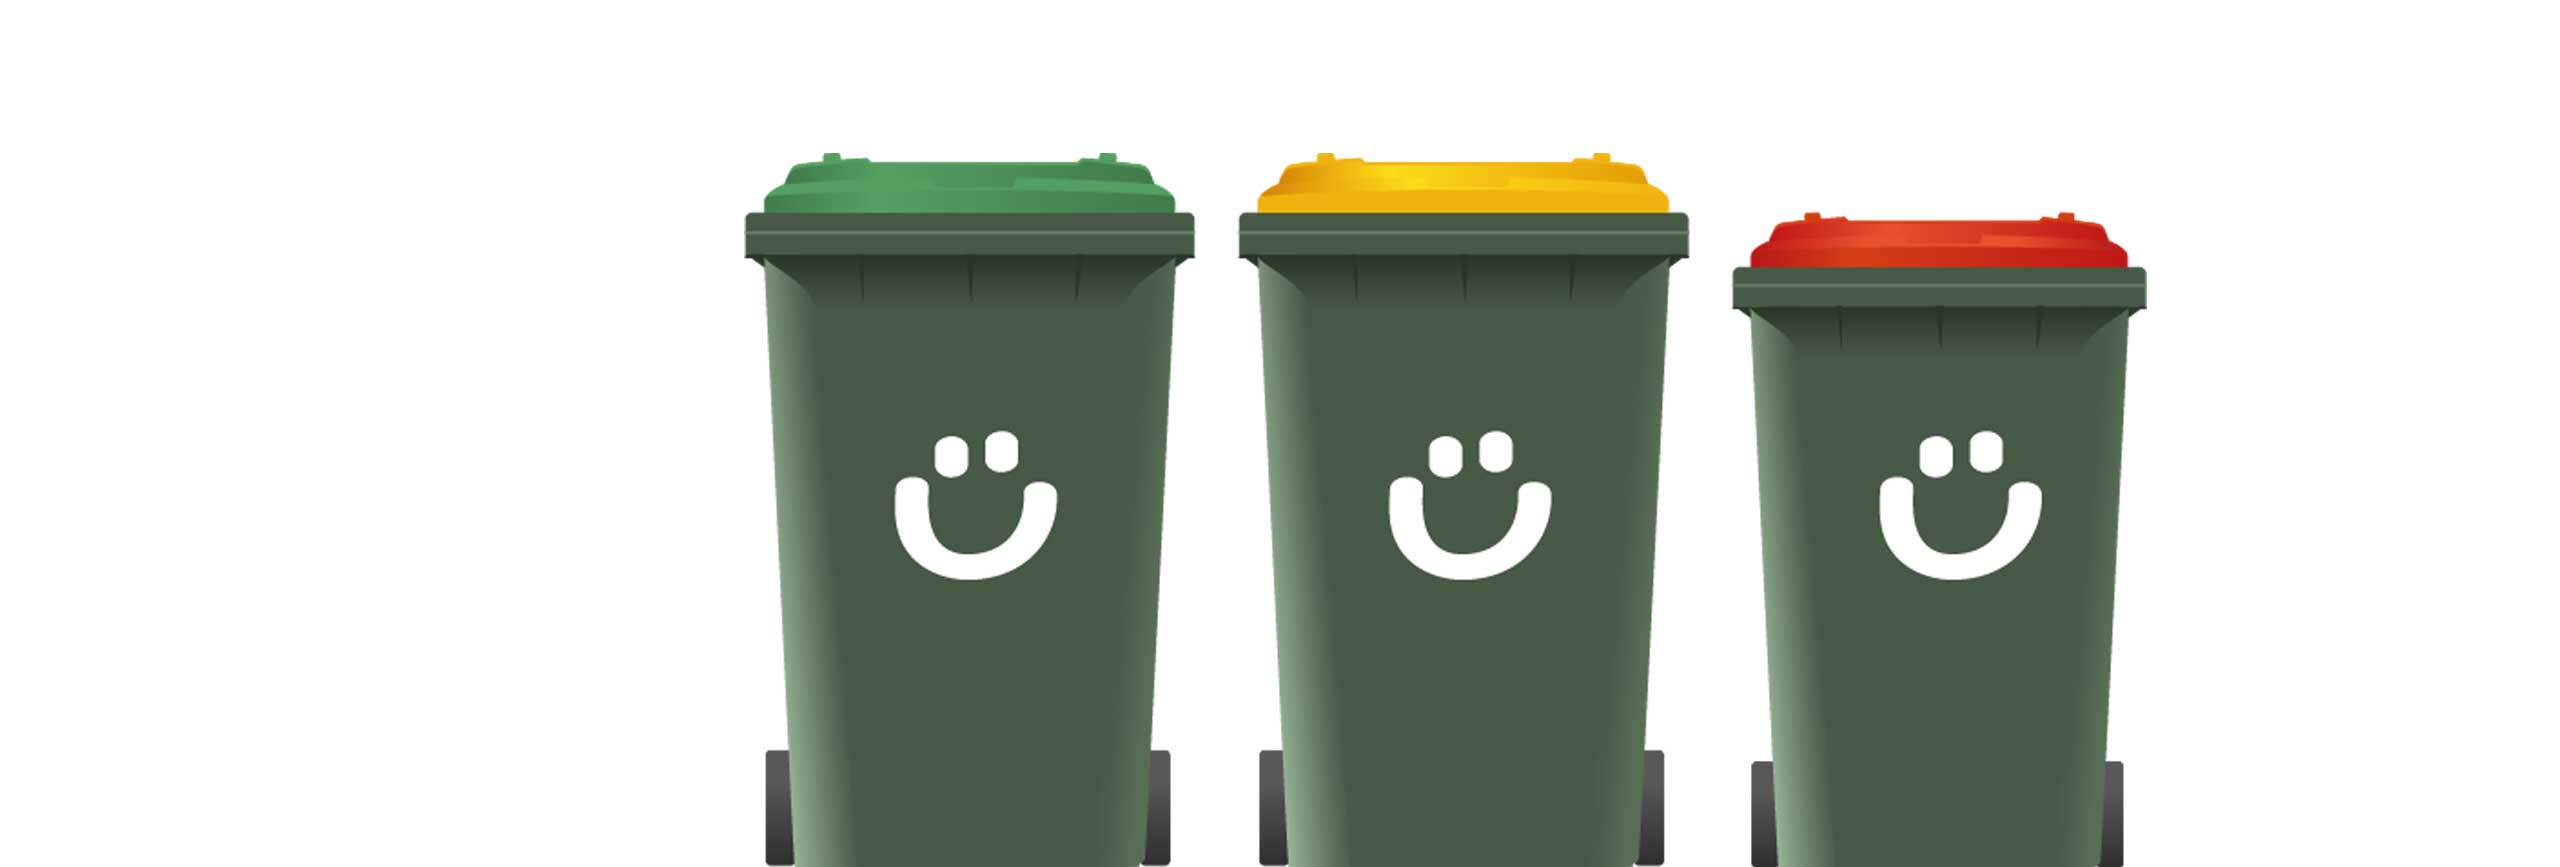 Graphic showing three bins - green, yellow and red